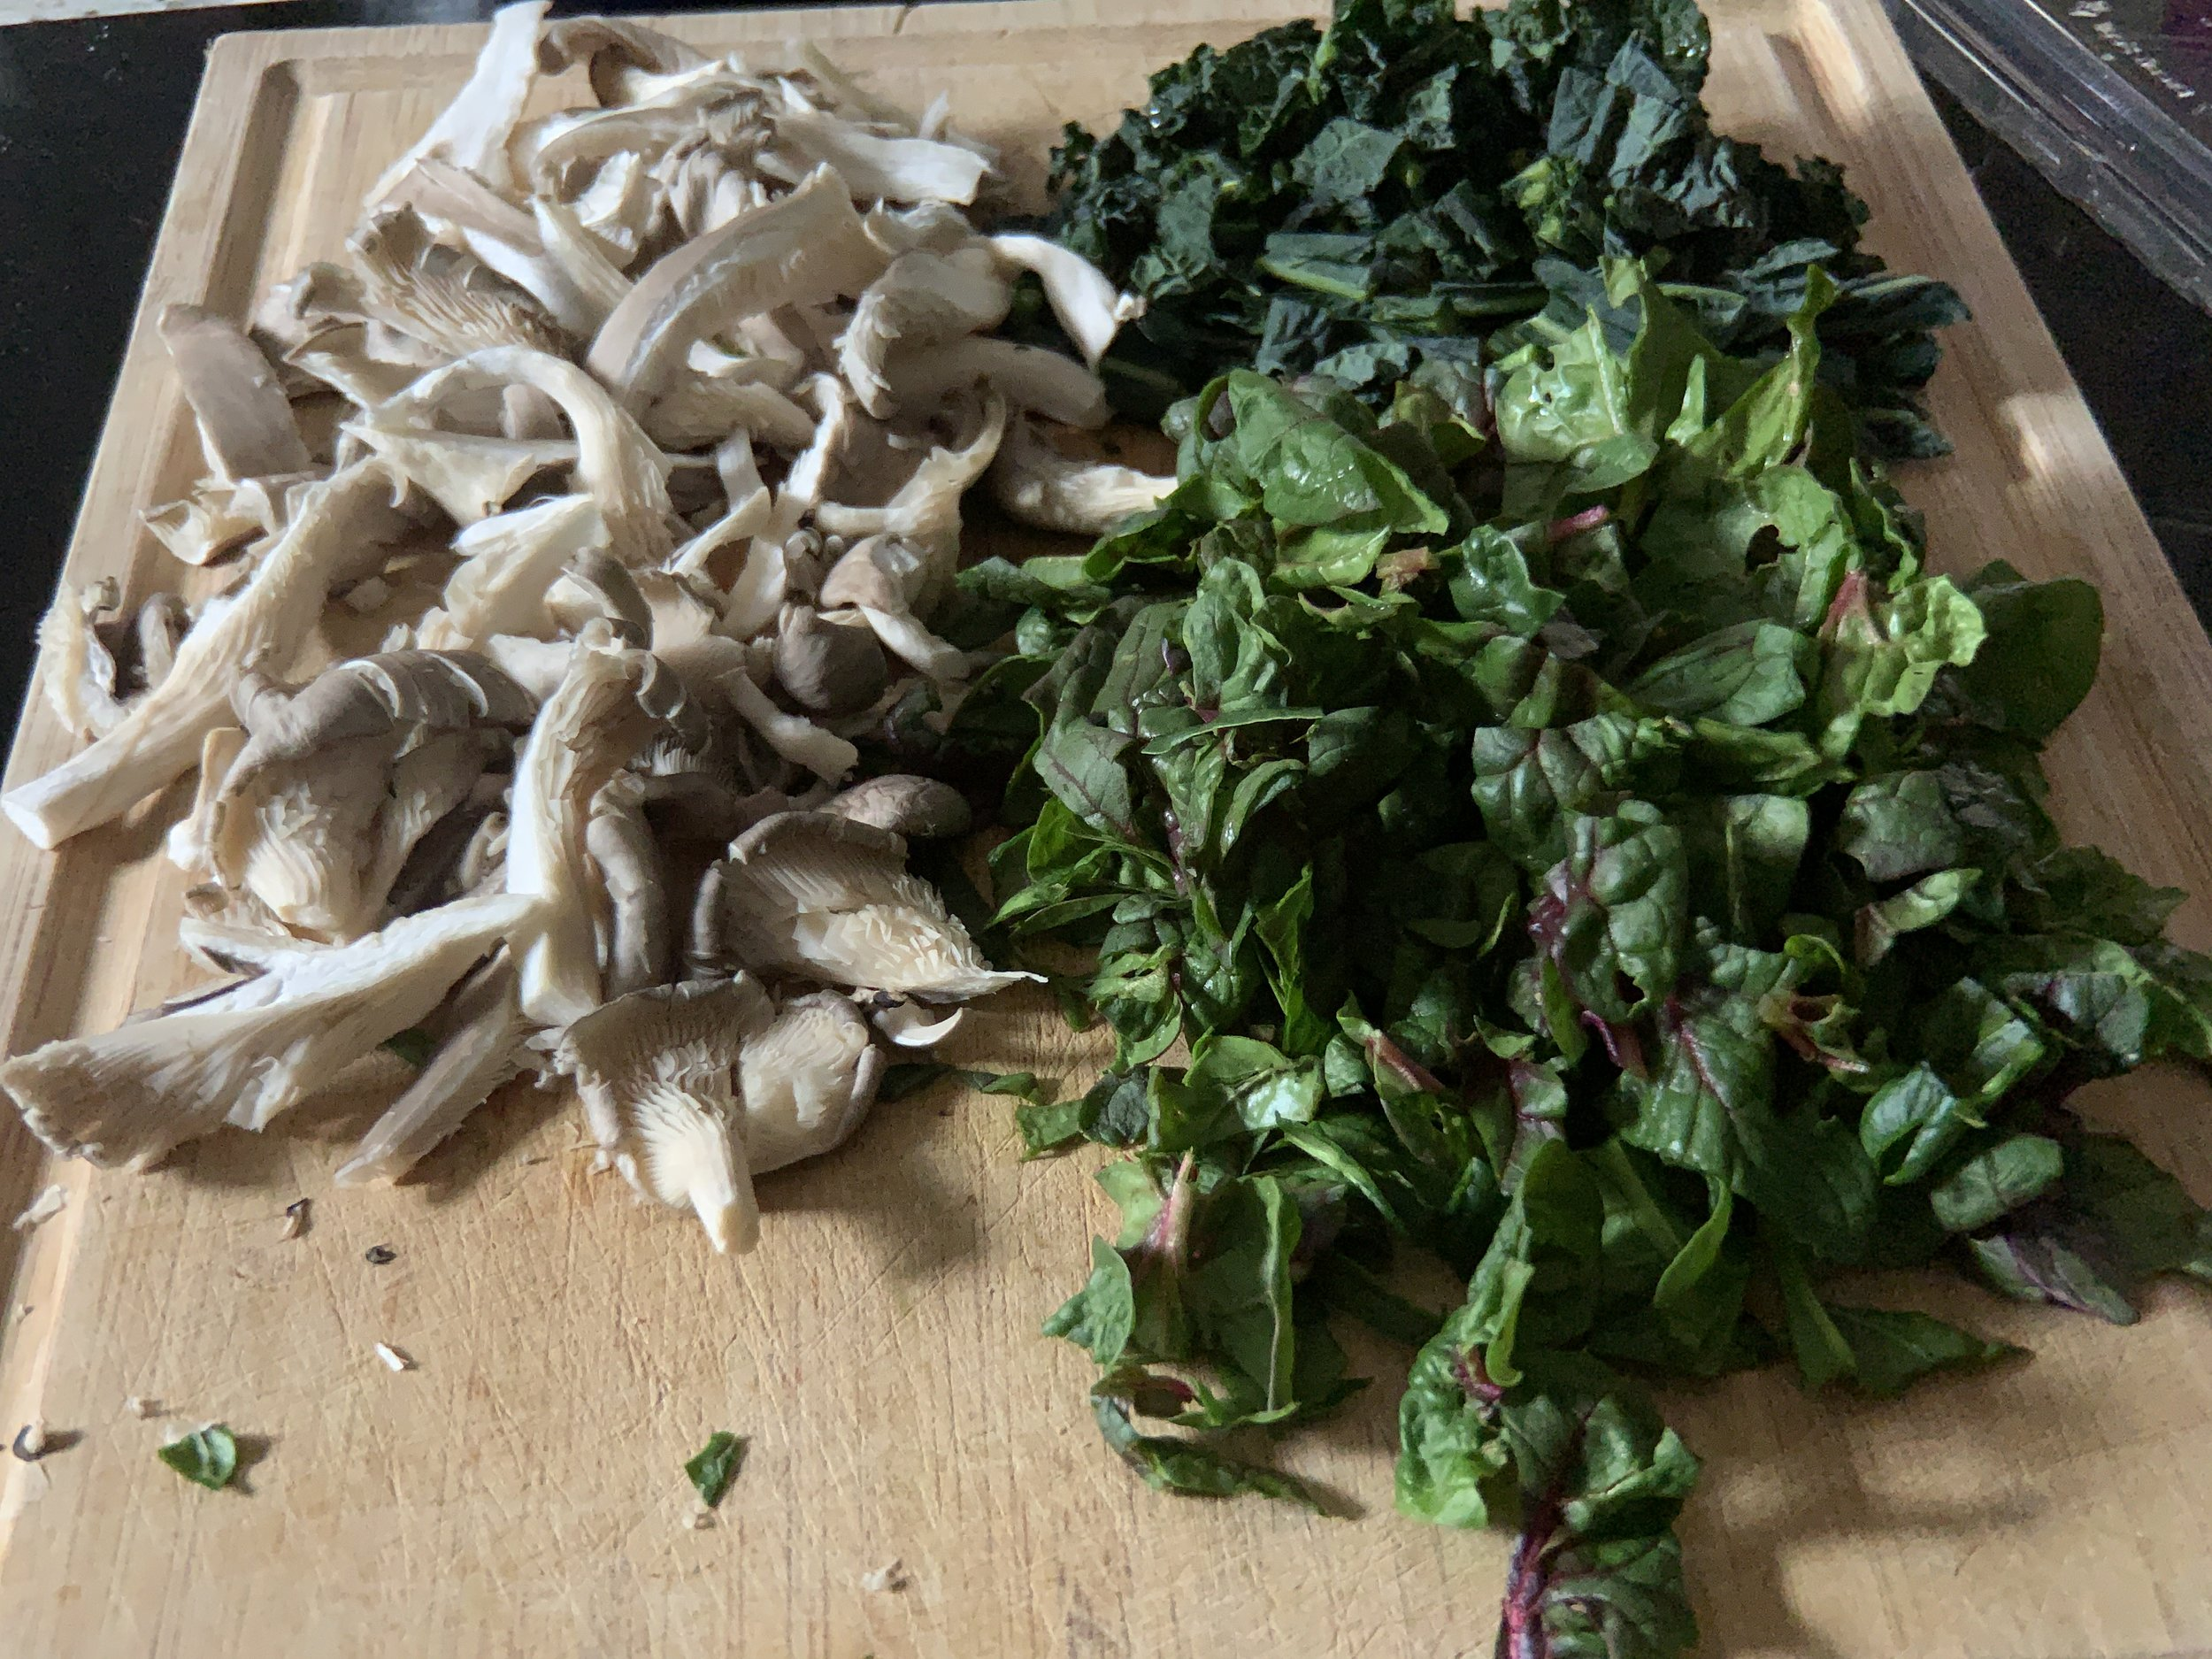 Gorgeous blue oyster mushrooms, kale and spinach